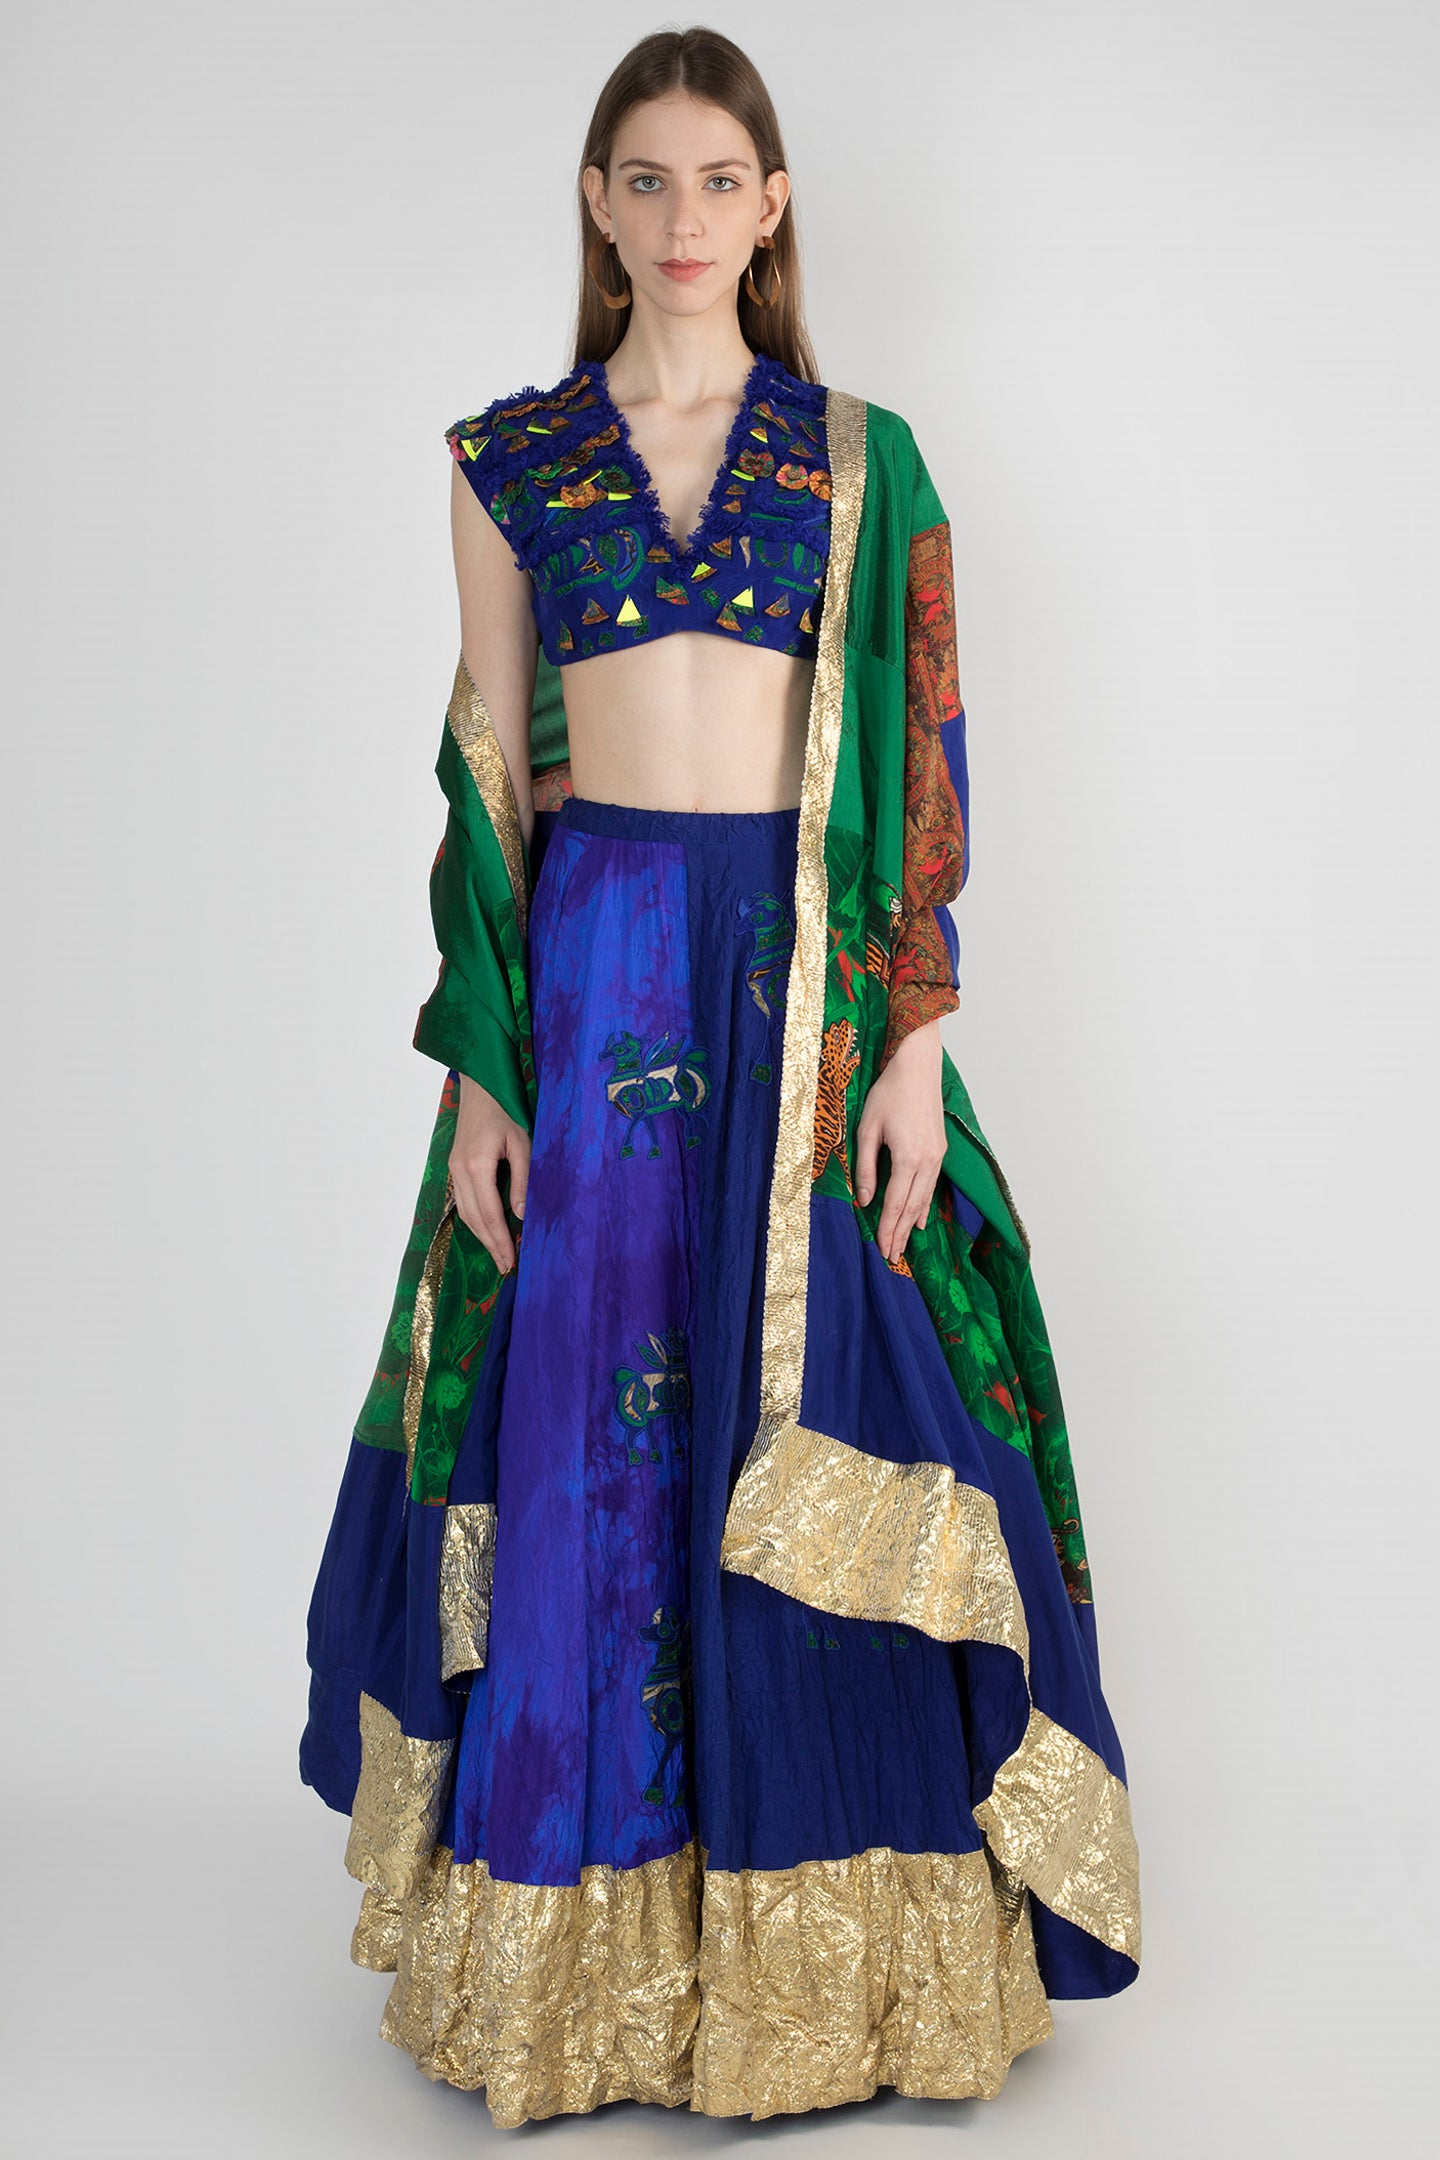 MASABA GUPTA BLUE MIXED MATERIAL & FRAY EMBELLISHED BLOUSE & CRUSH BLUE HALF AND HALF EMBROIDERED LEHENGA WITH PATCHWORK DUPATTA - The Grand Trunk